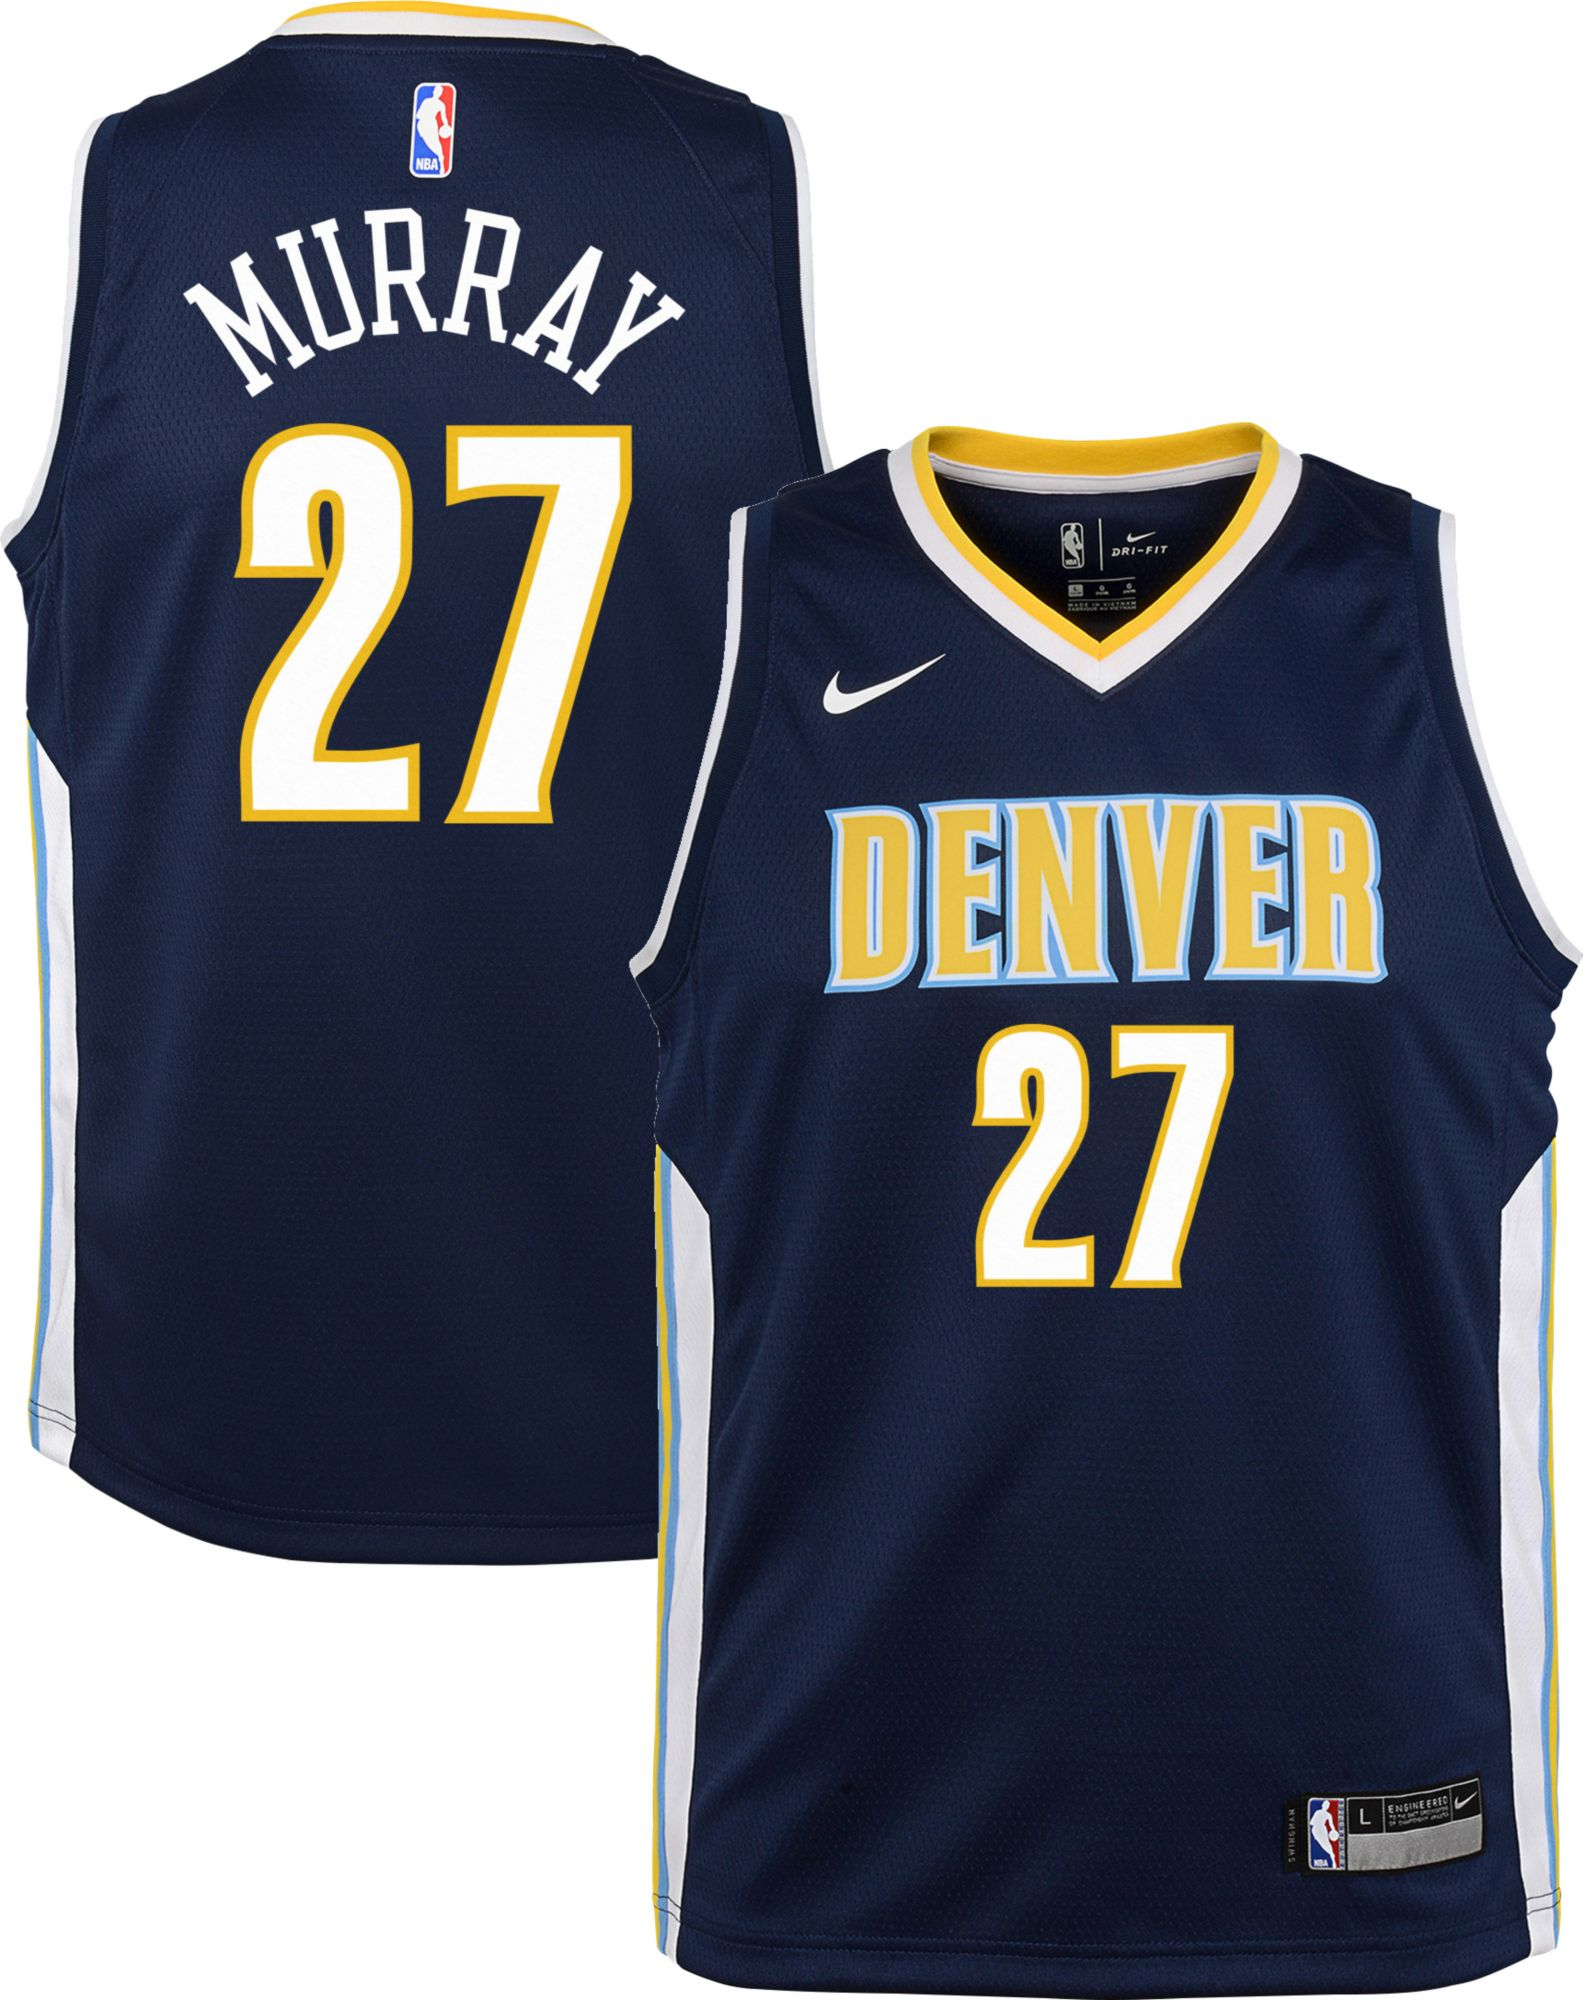 newest 890d4 51512 27 jamal murray jersey knit